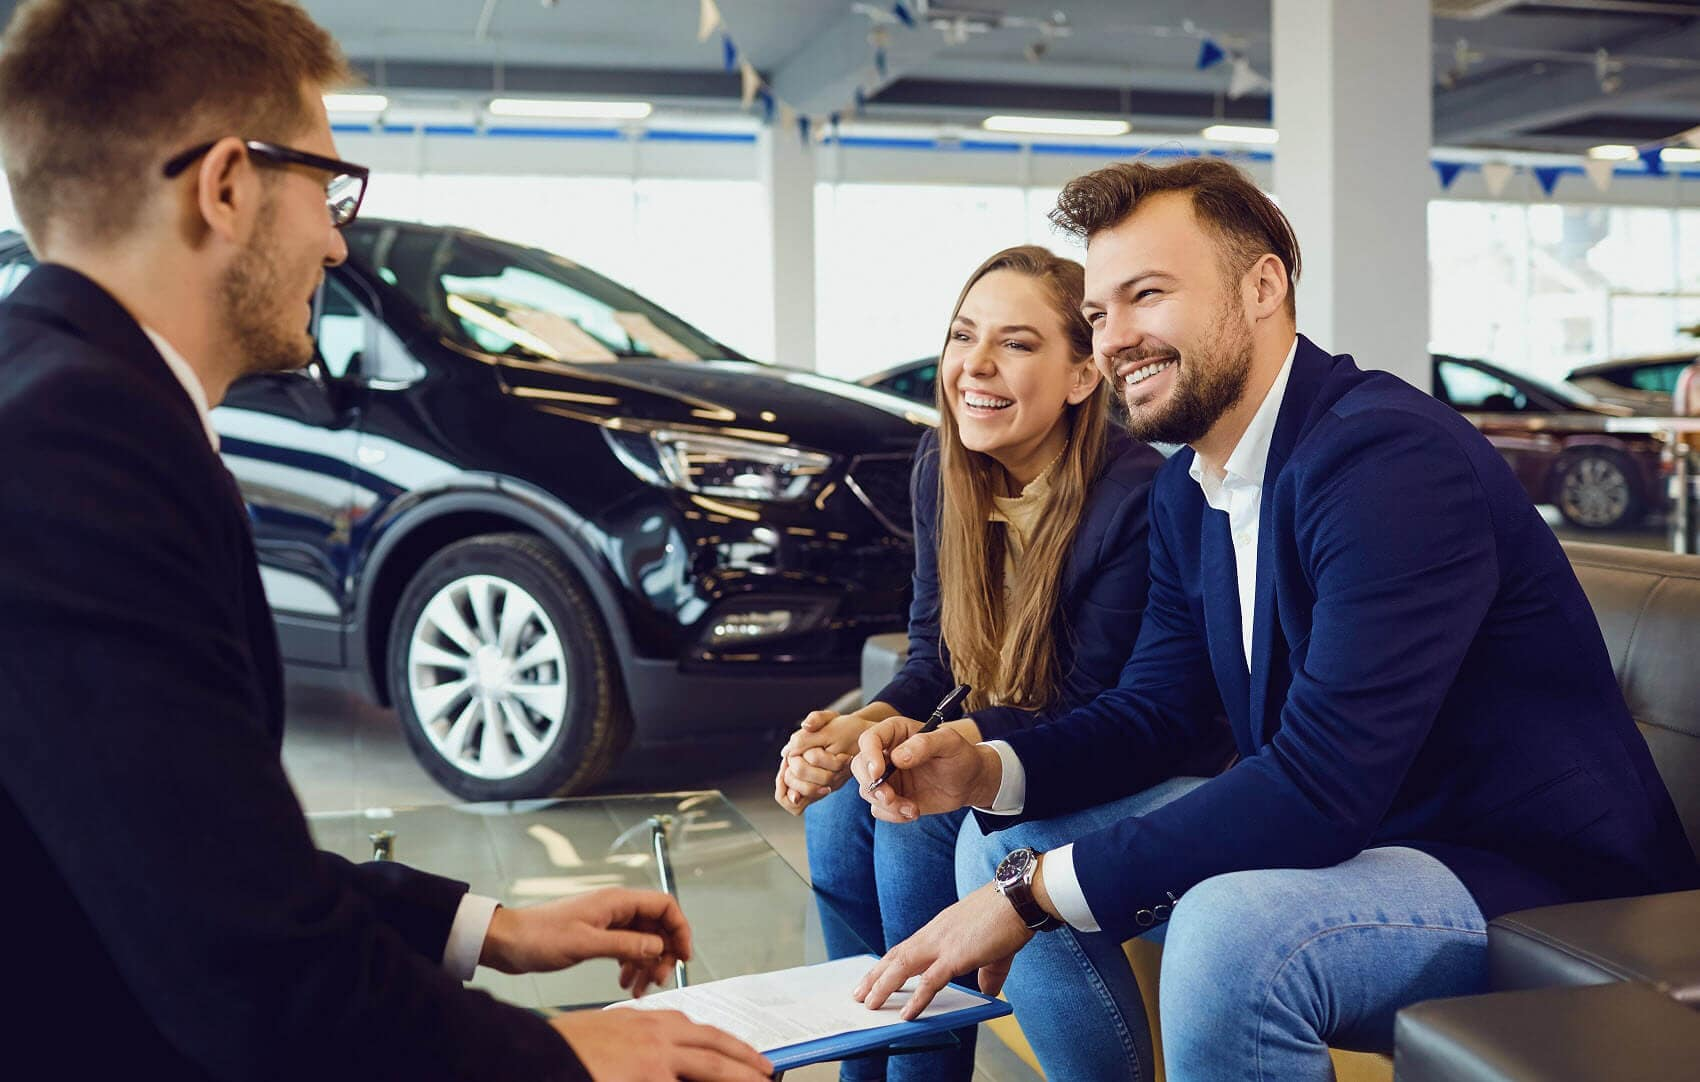 Financing at Car Dealership